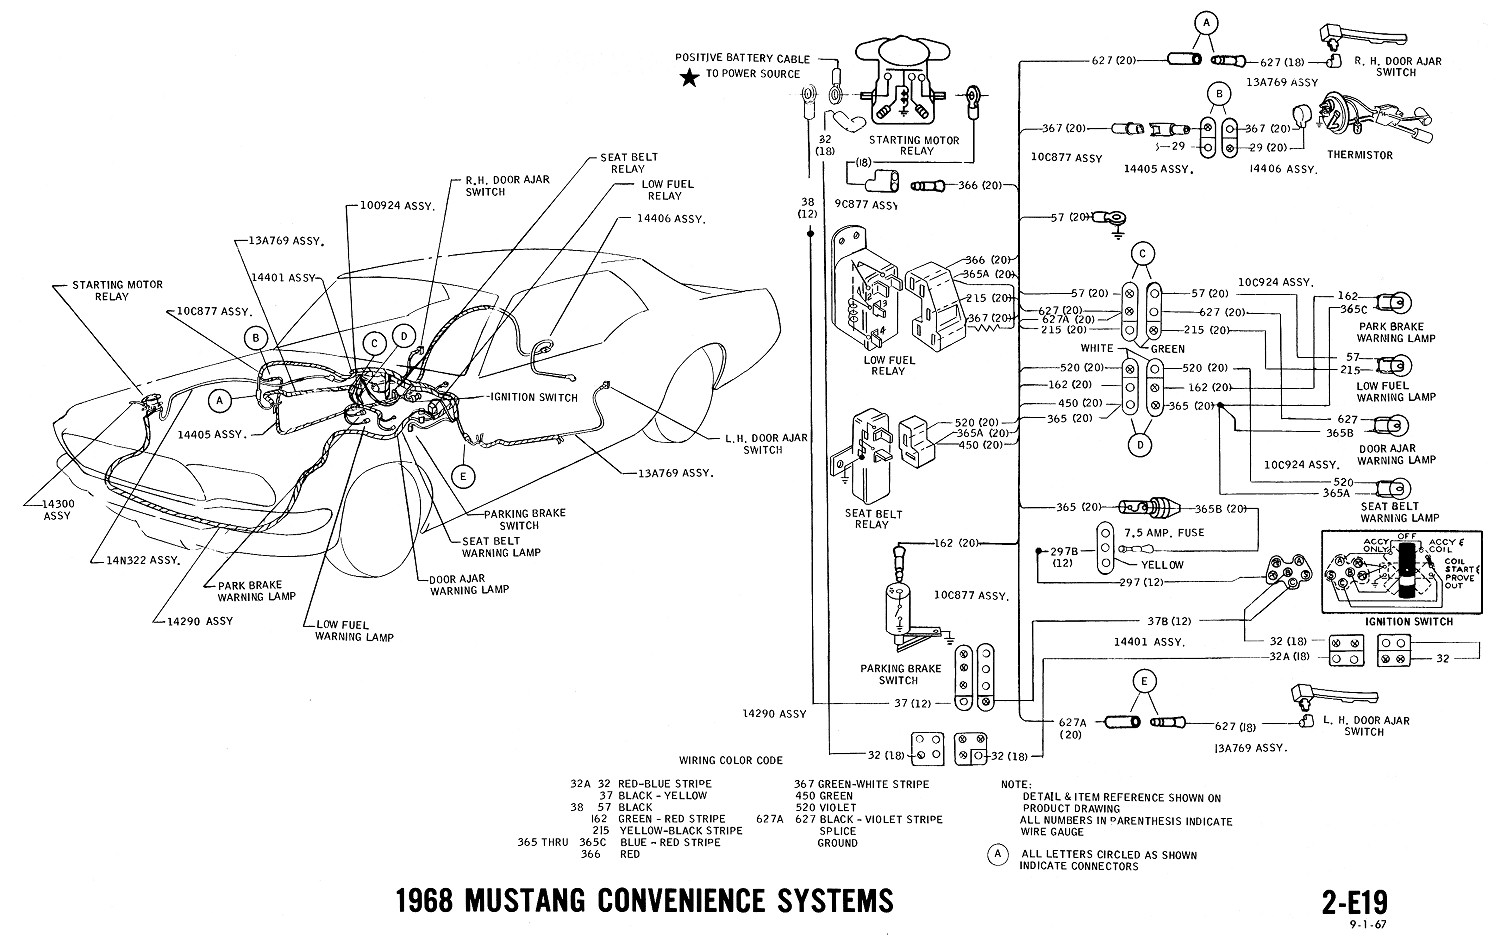 E19 1968 mustang wiring diagrams evolving software ford mustang wiring diagram at cos-gaming.co